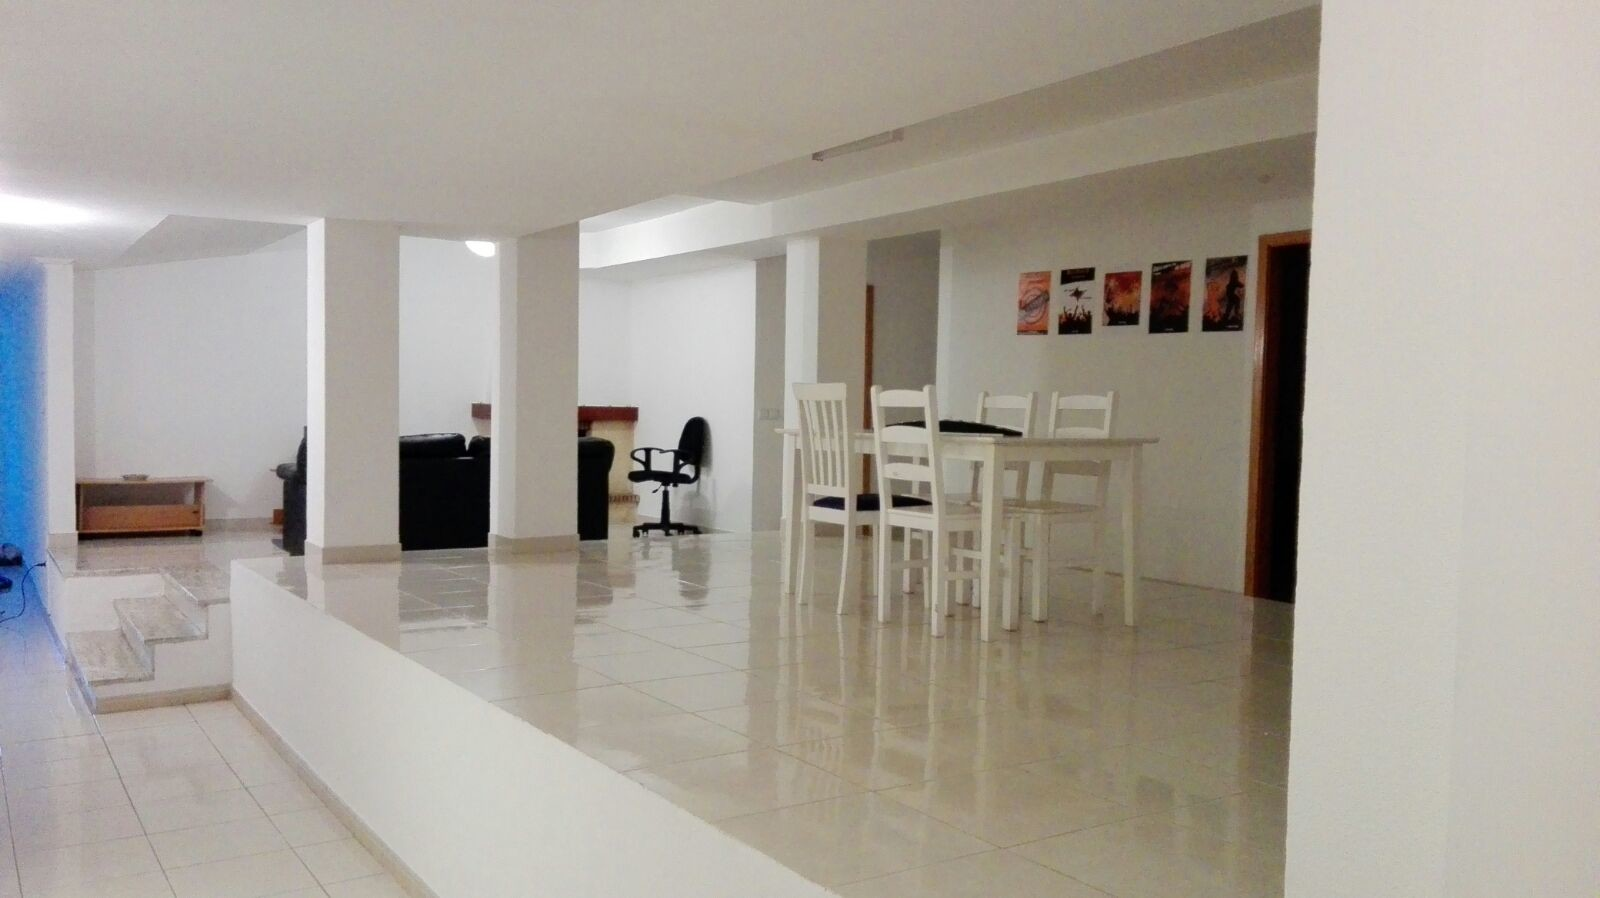 large-shared-rooms-student-coimbra-near-university-b9e04e70315fb22506814b25fe76cfaf